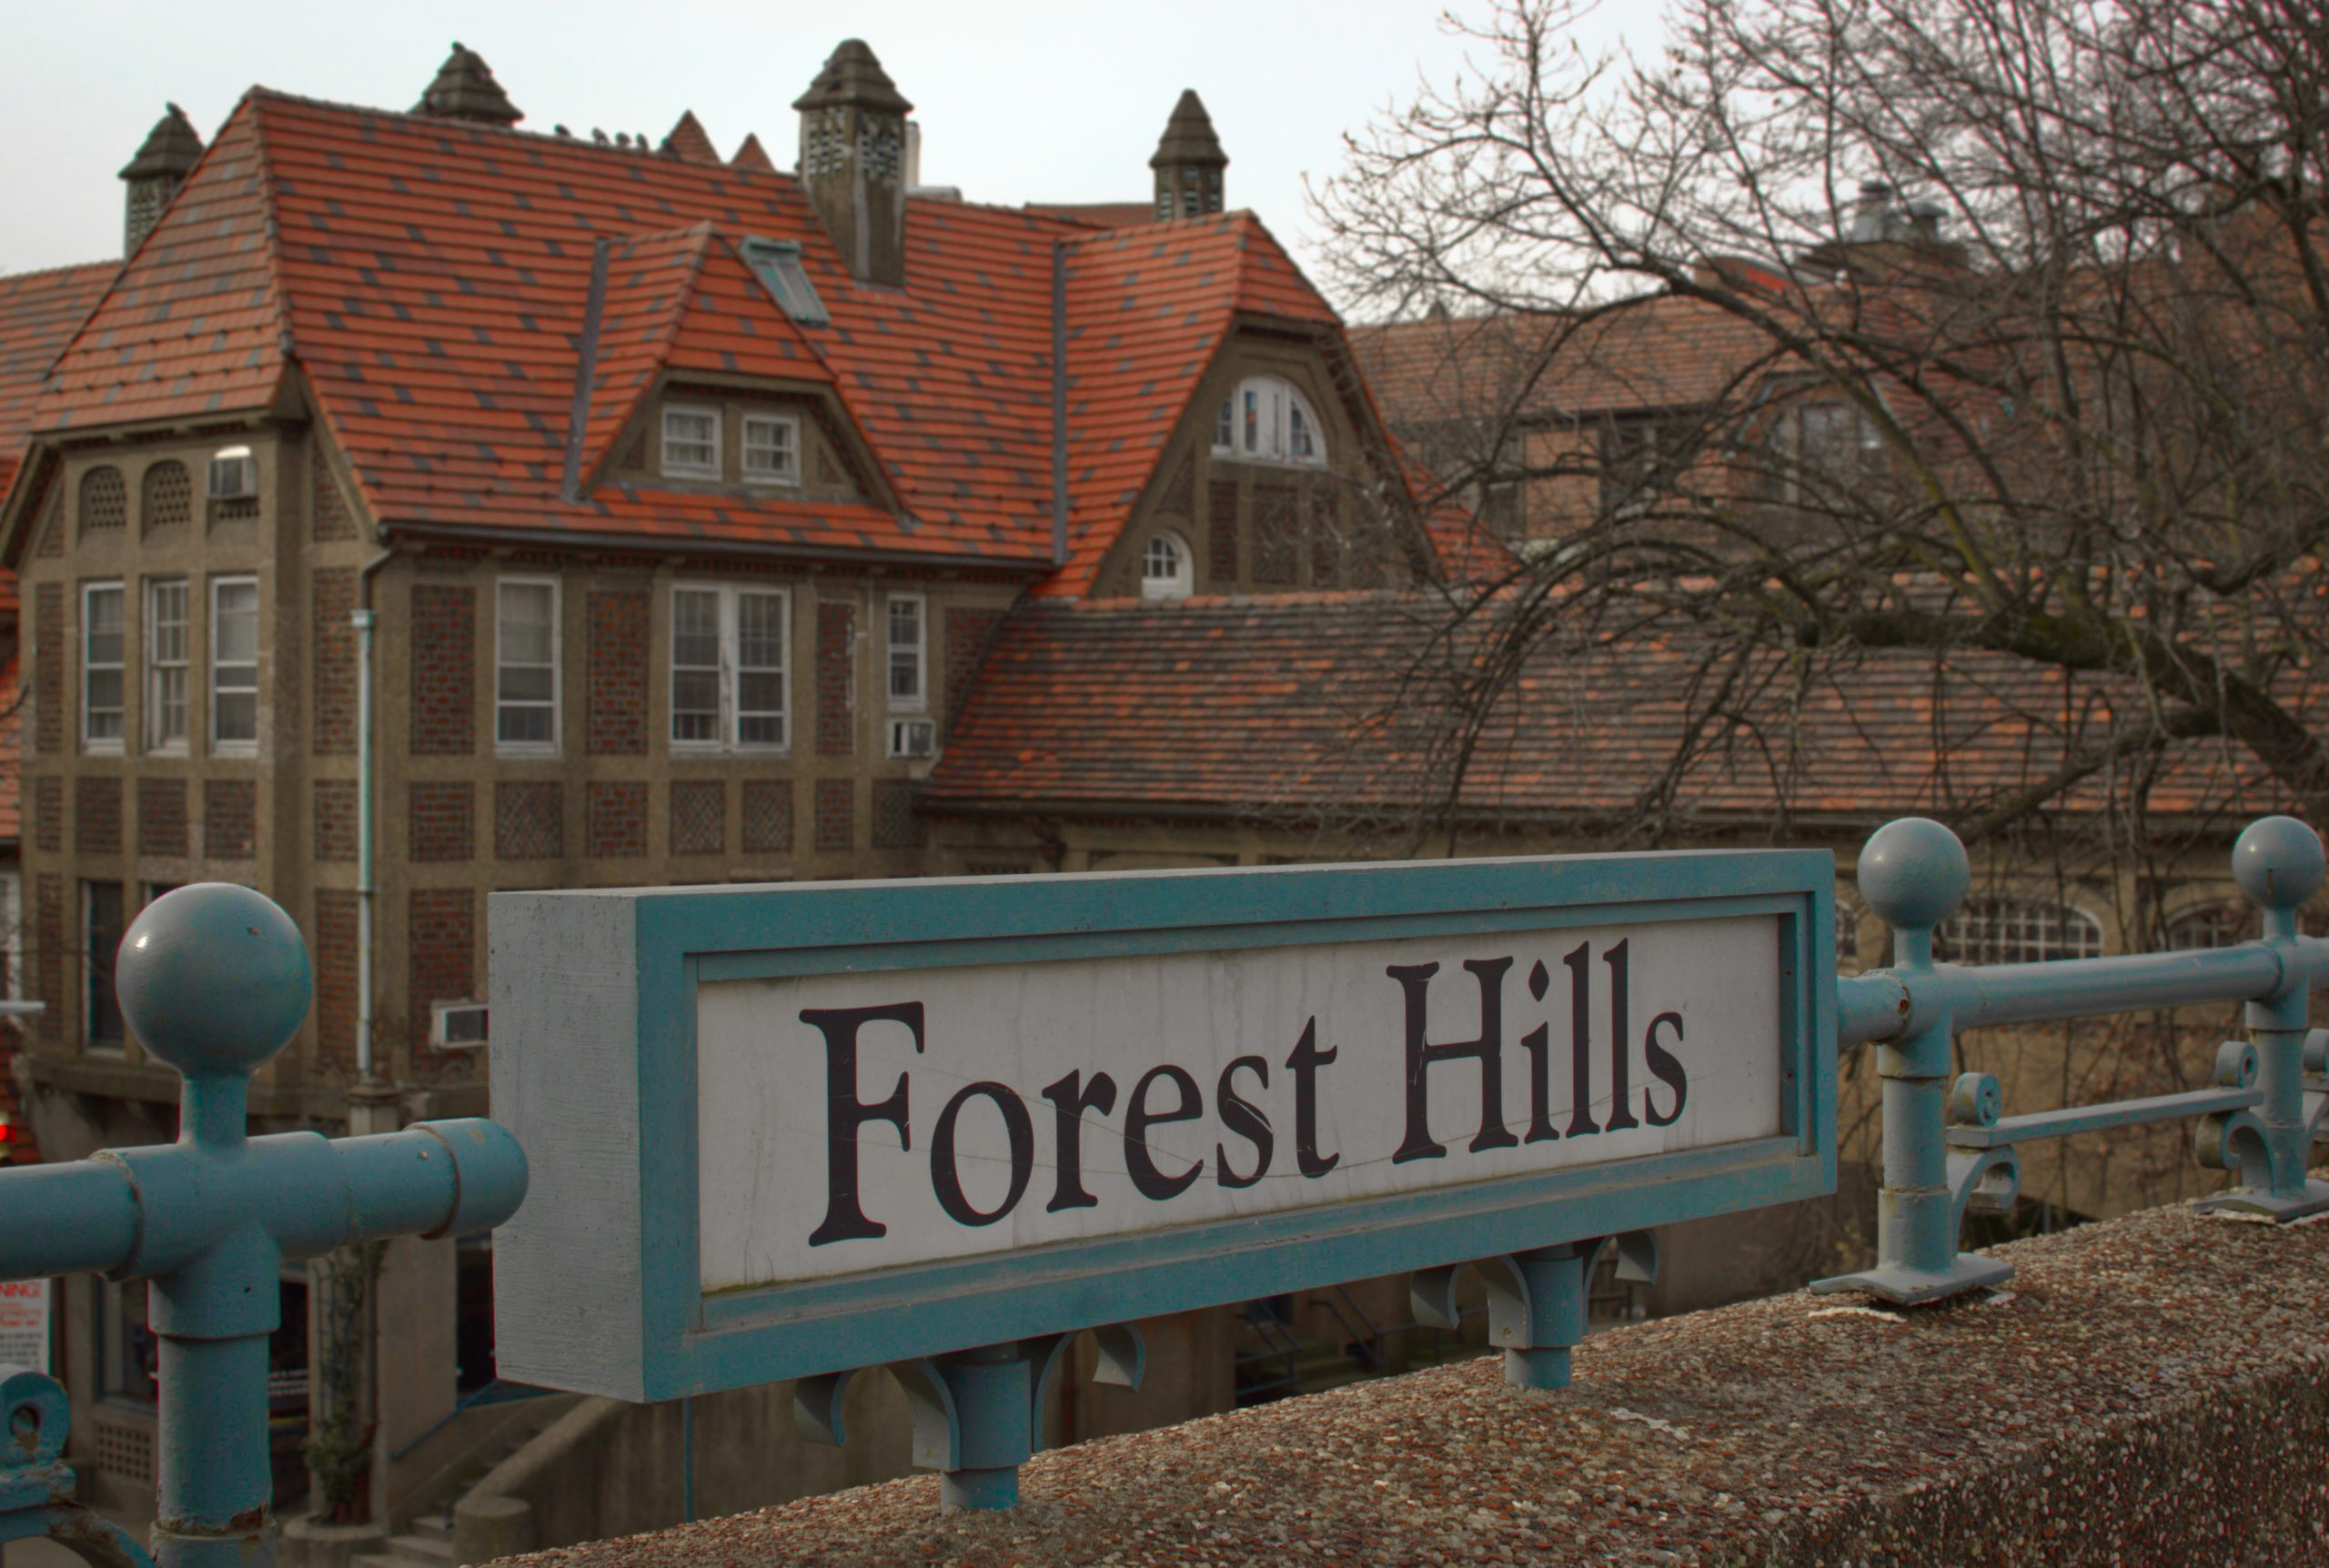 Forest hills sign with building in background